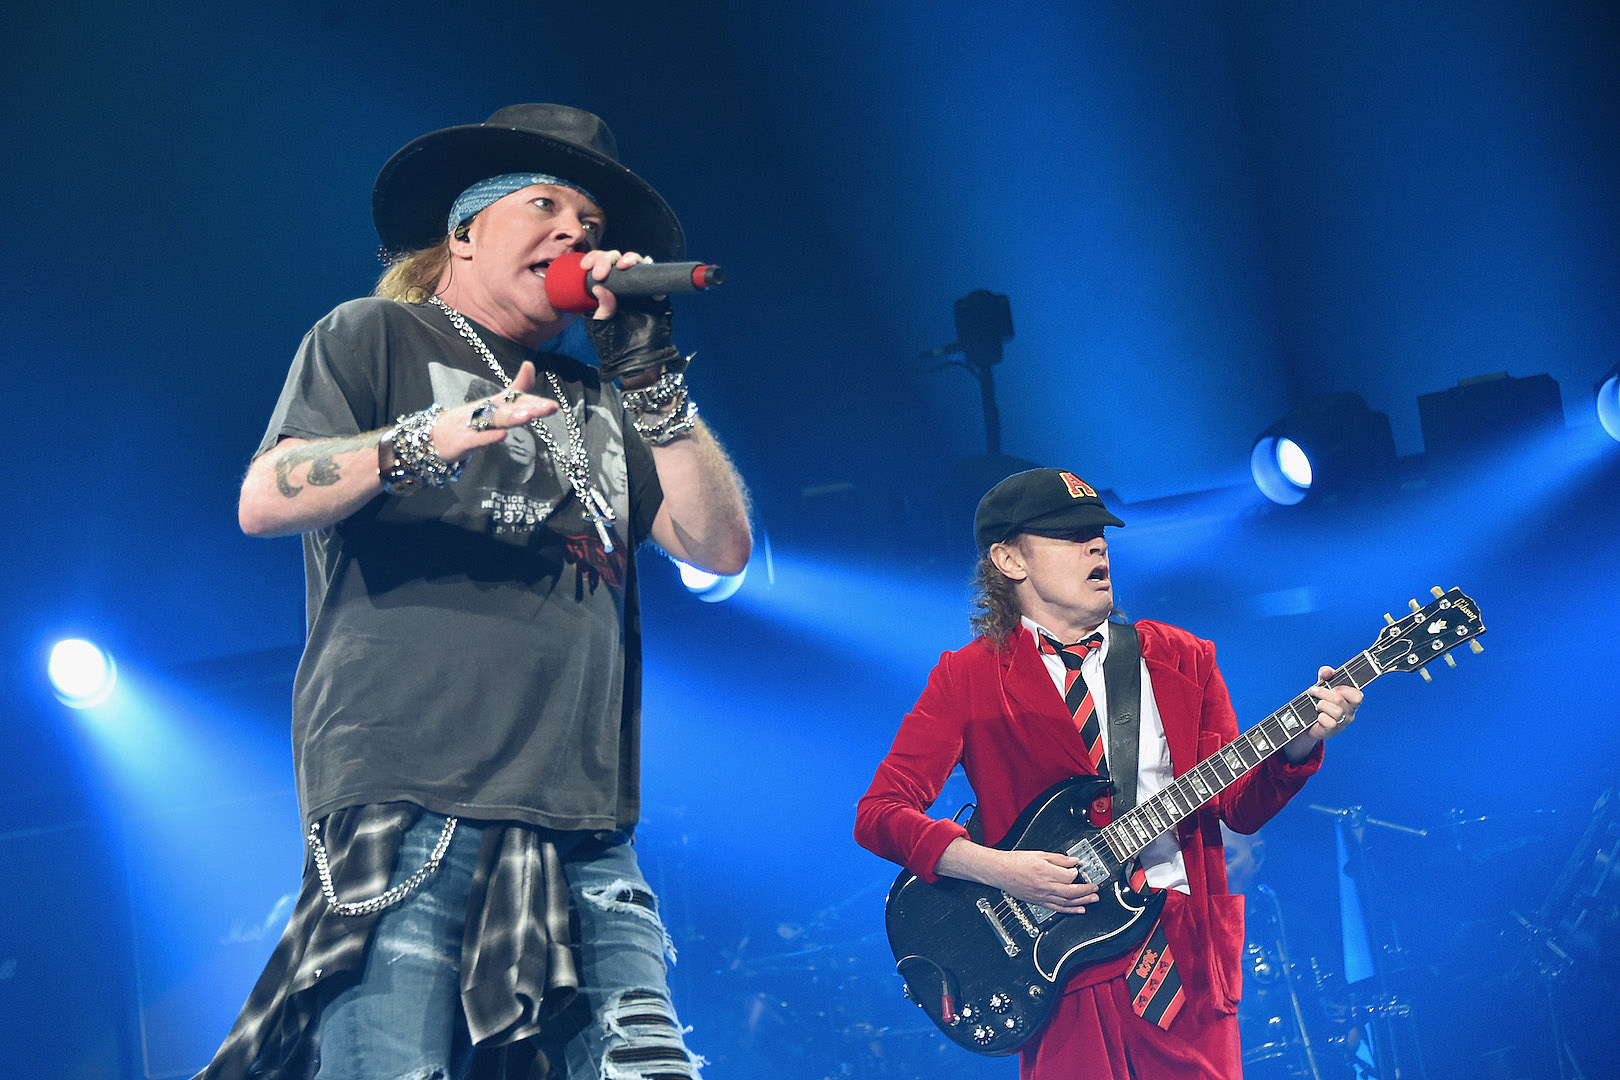 Guns N' Roses Battle Concert Delays + Joined by Angus Young for AC/DC Cover in Germany